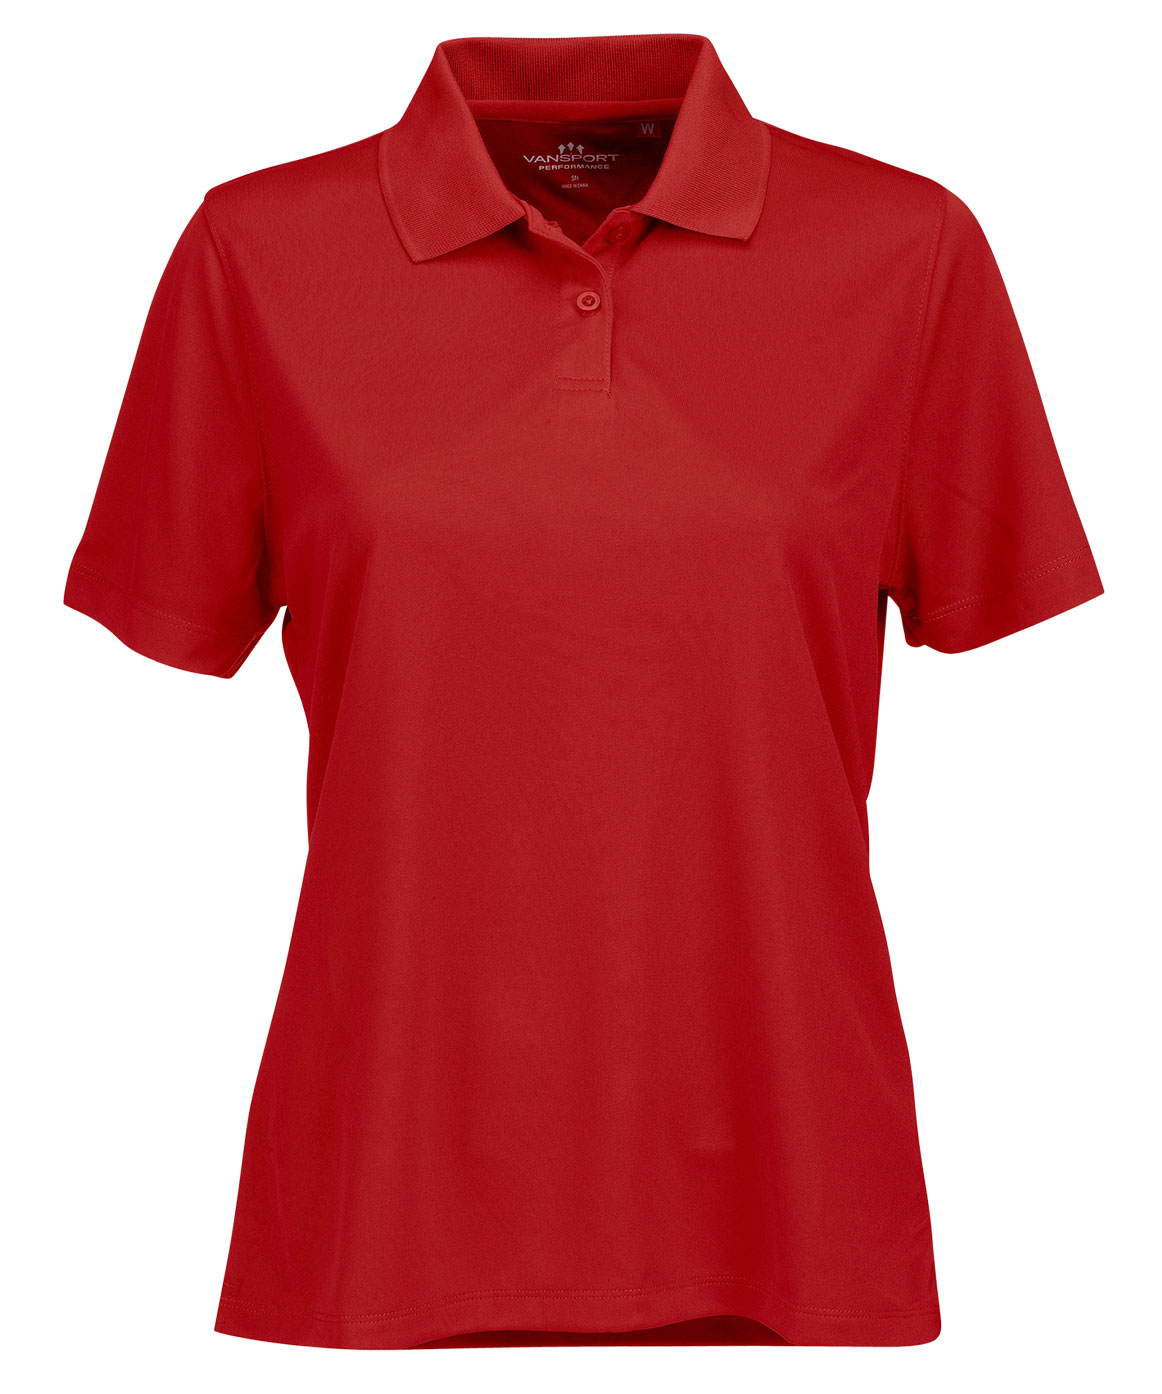 Vansport™ Omega Womens Solid Mesh Tech Polo